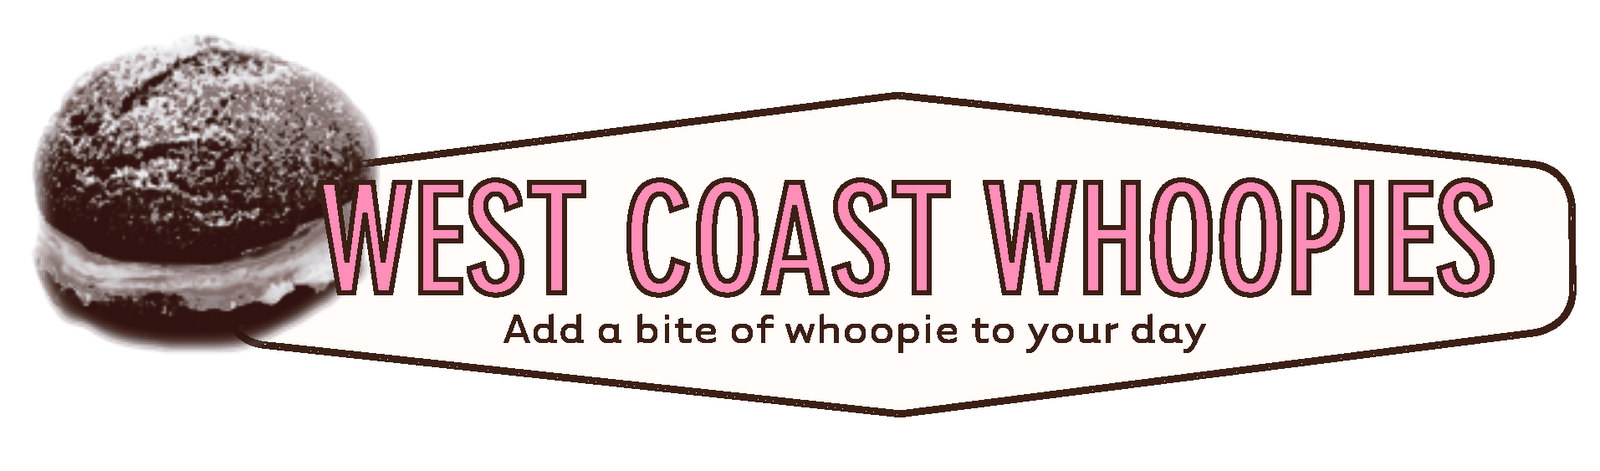 West Coast Whoopies